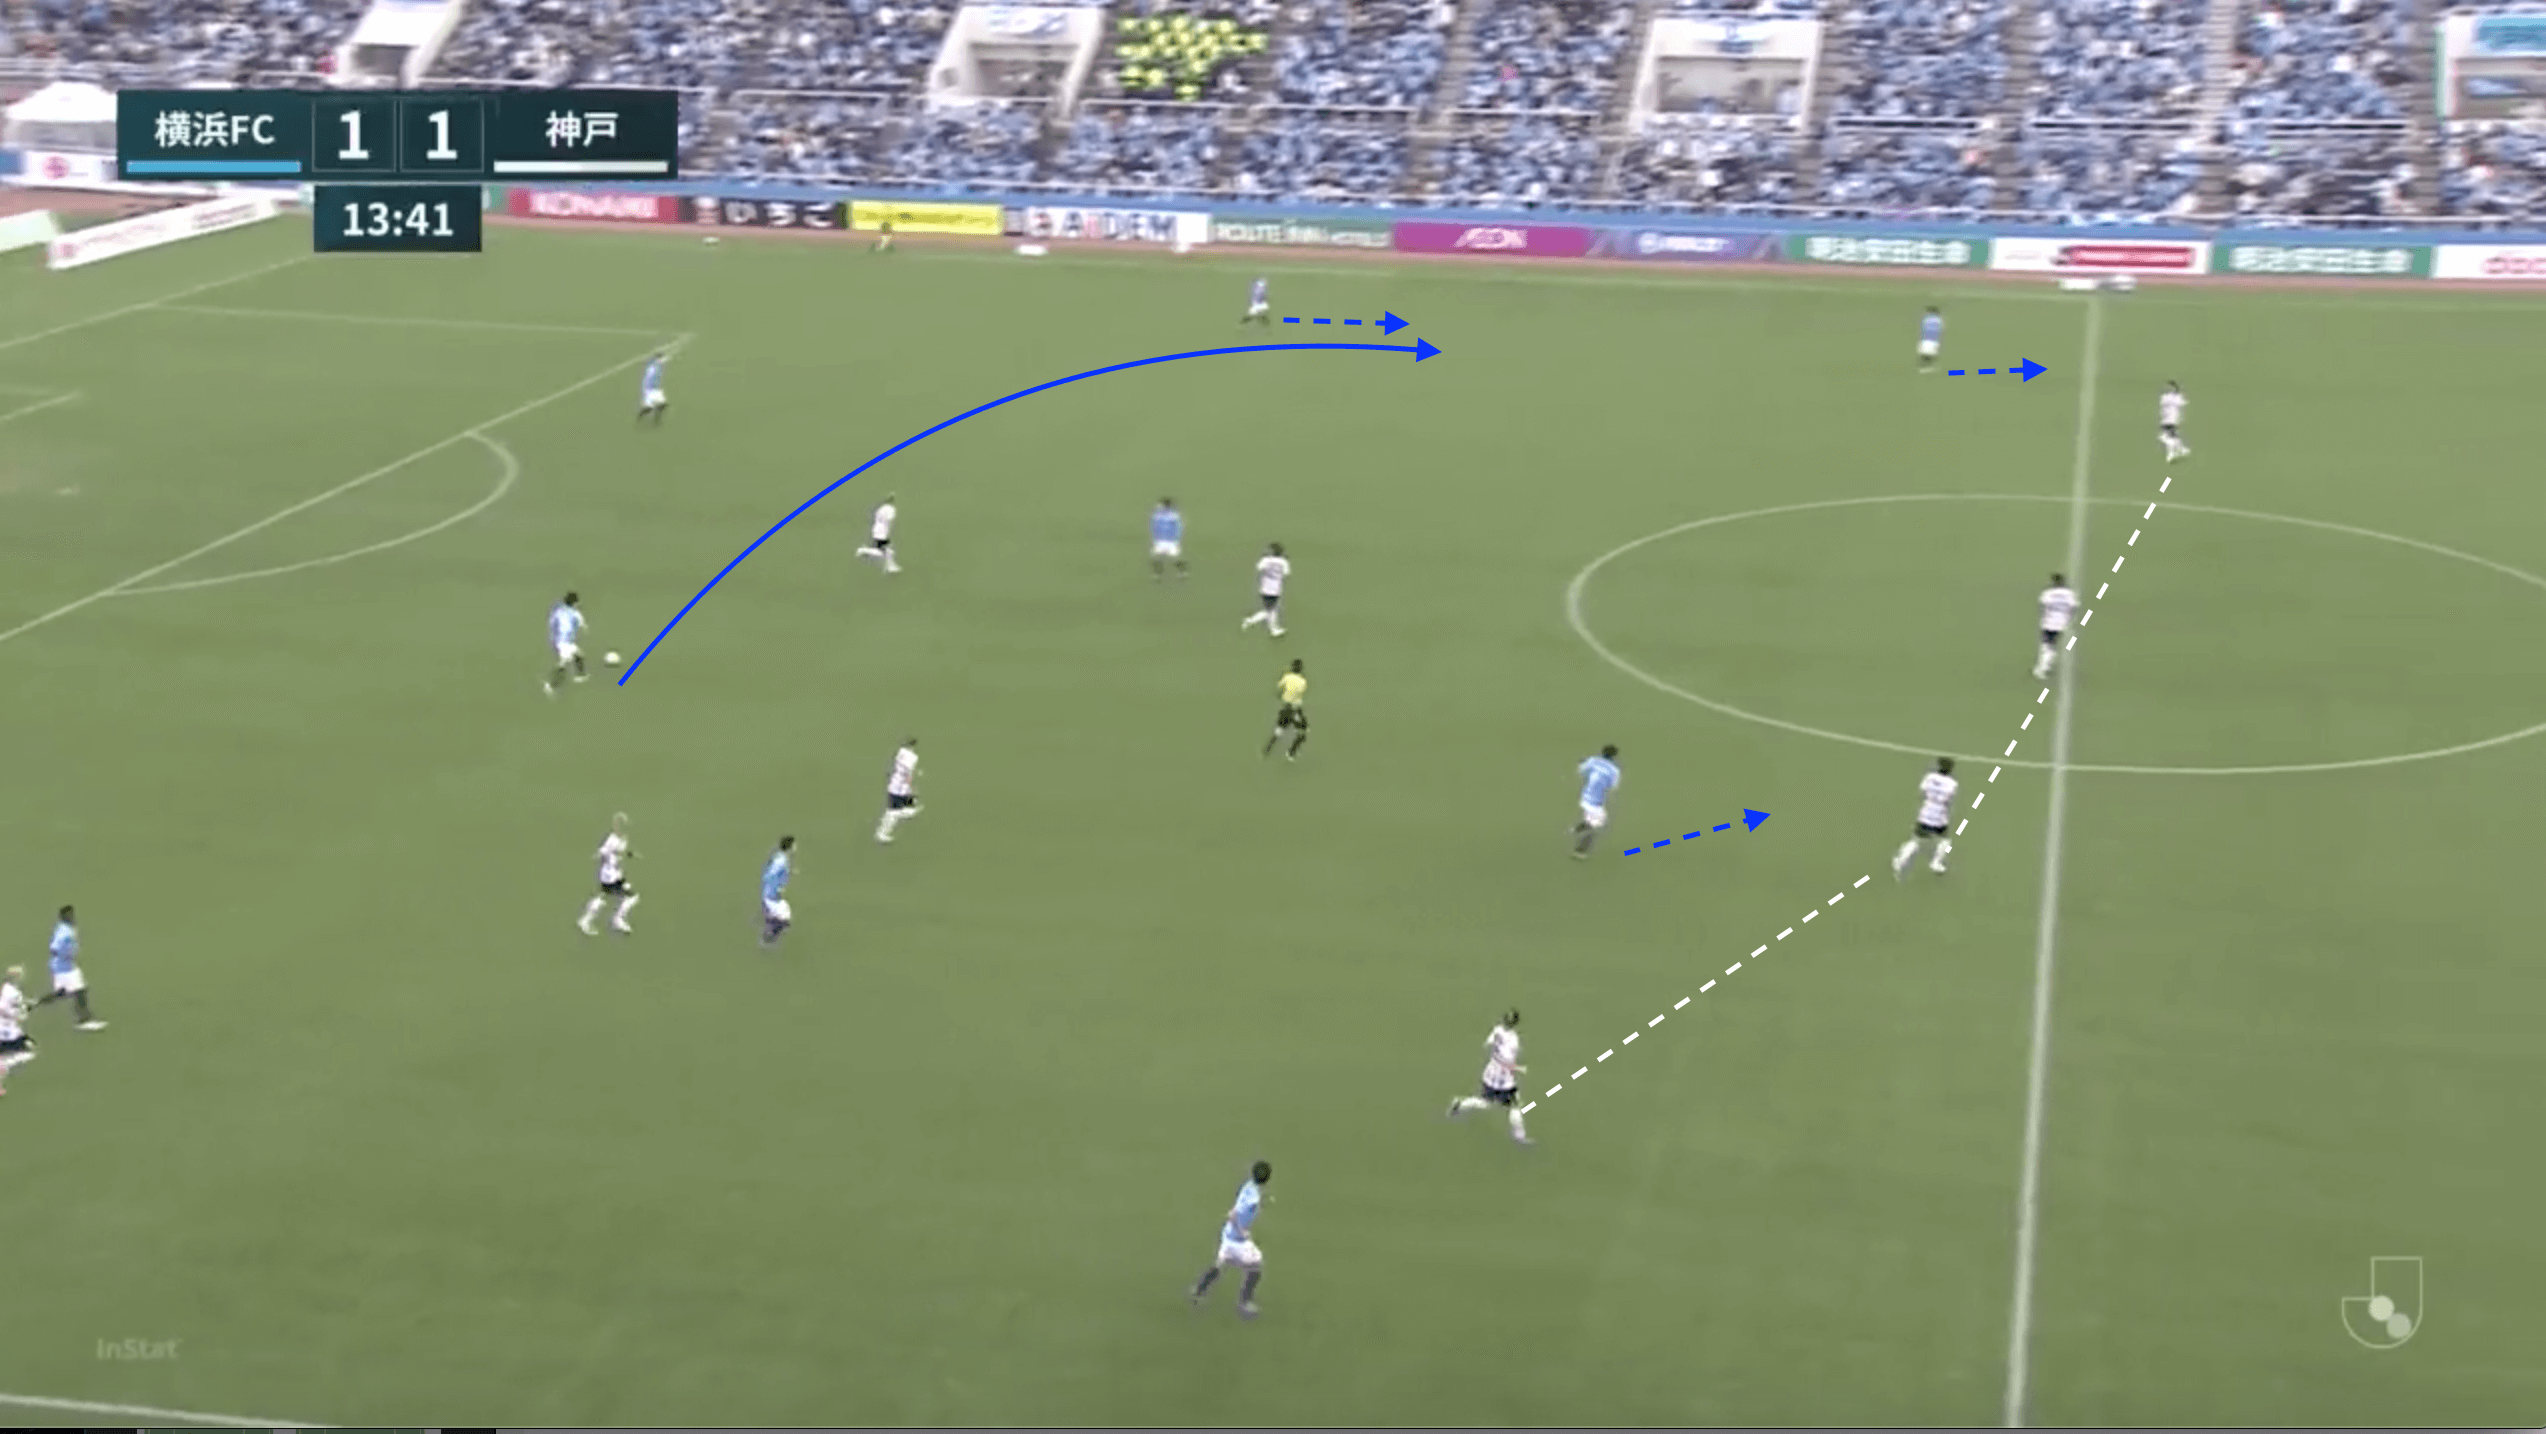 J League 2020: Yokohoma FC vs Vissel Kobe - tactical analysis tactics